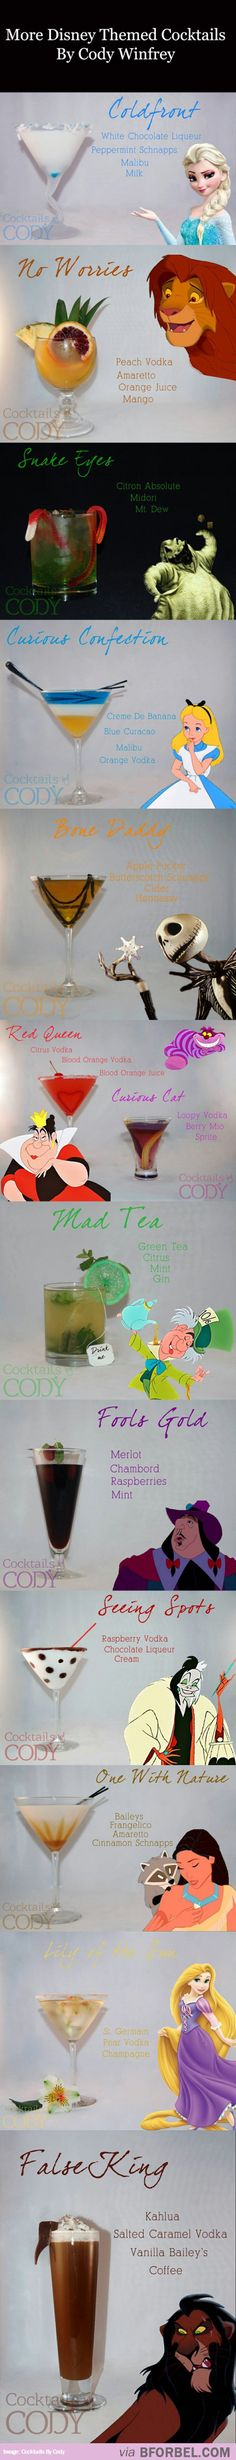 Disney themed cocktails.